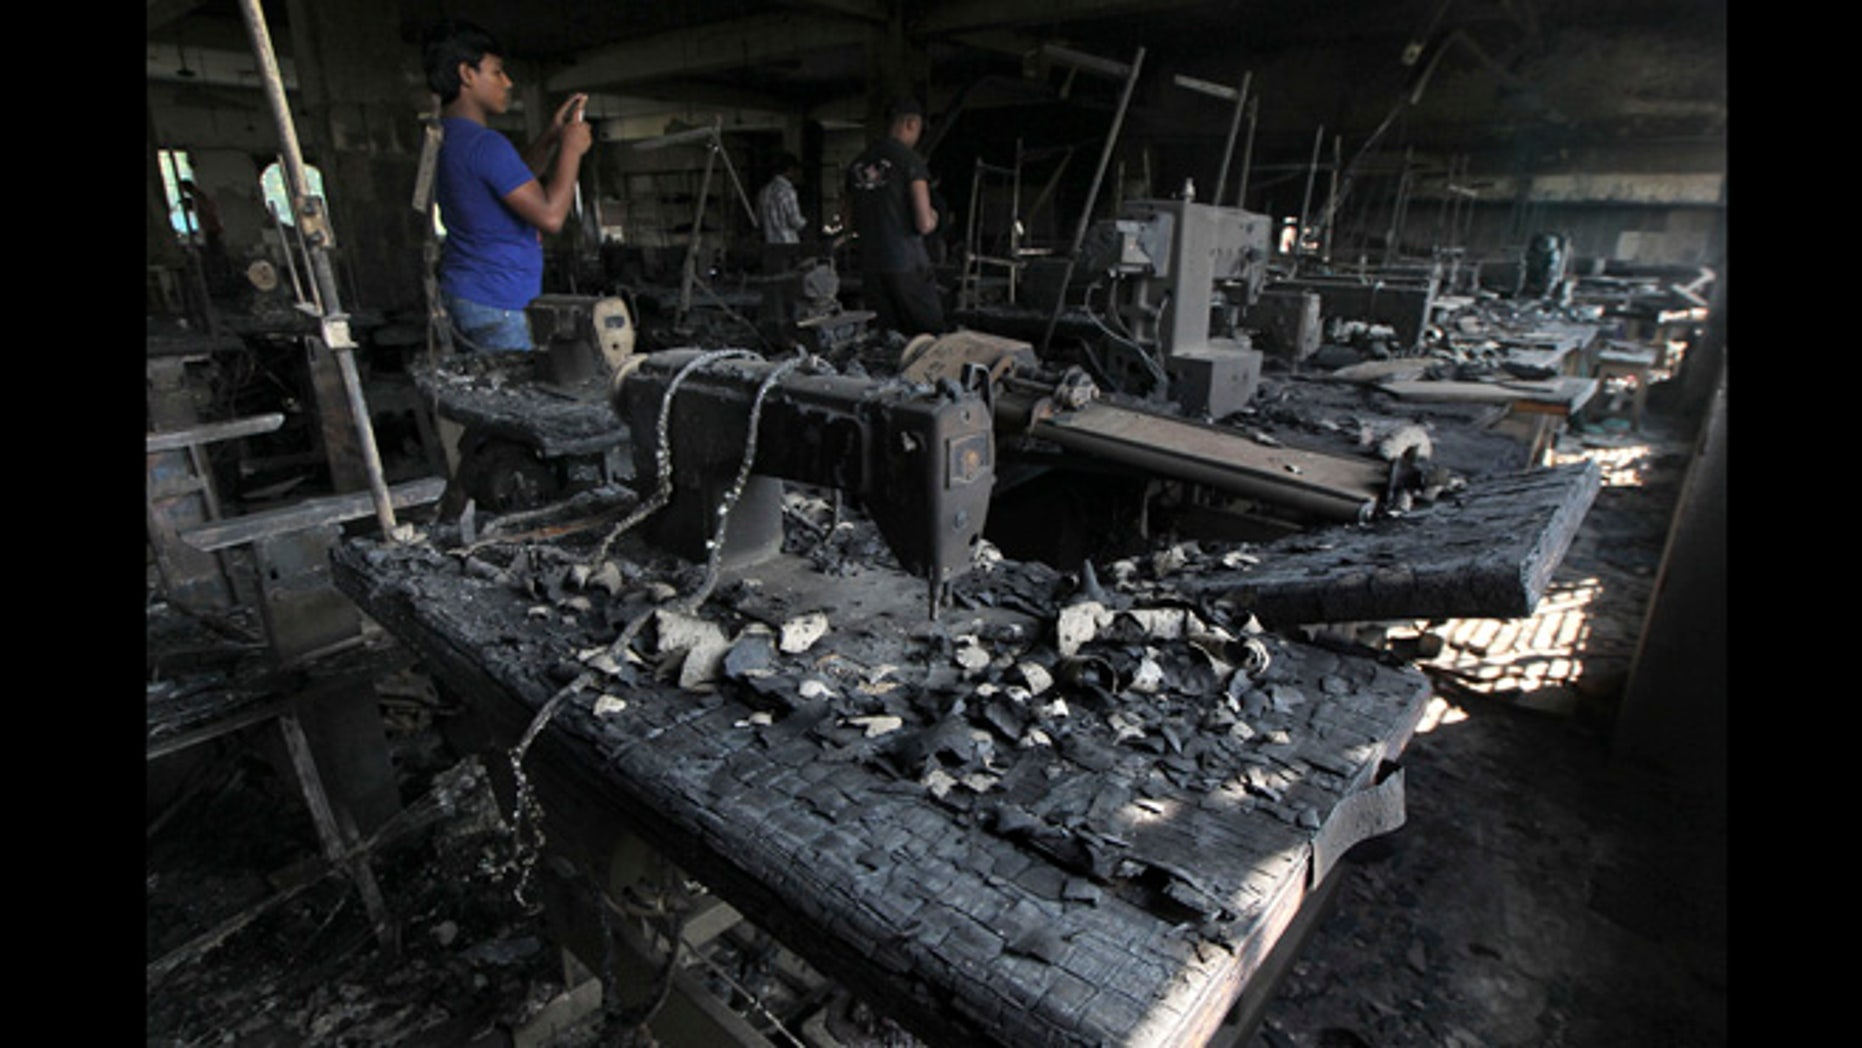 Nov. 26, 2012: A man takes photographs inside a garment-factory where a fire killed more than 110 people Saturday  on the outskirts of Dhaka, Bangladesh.